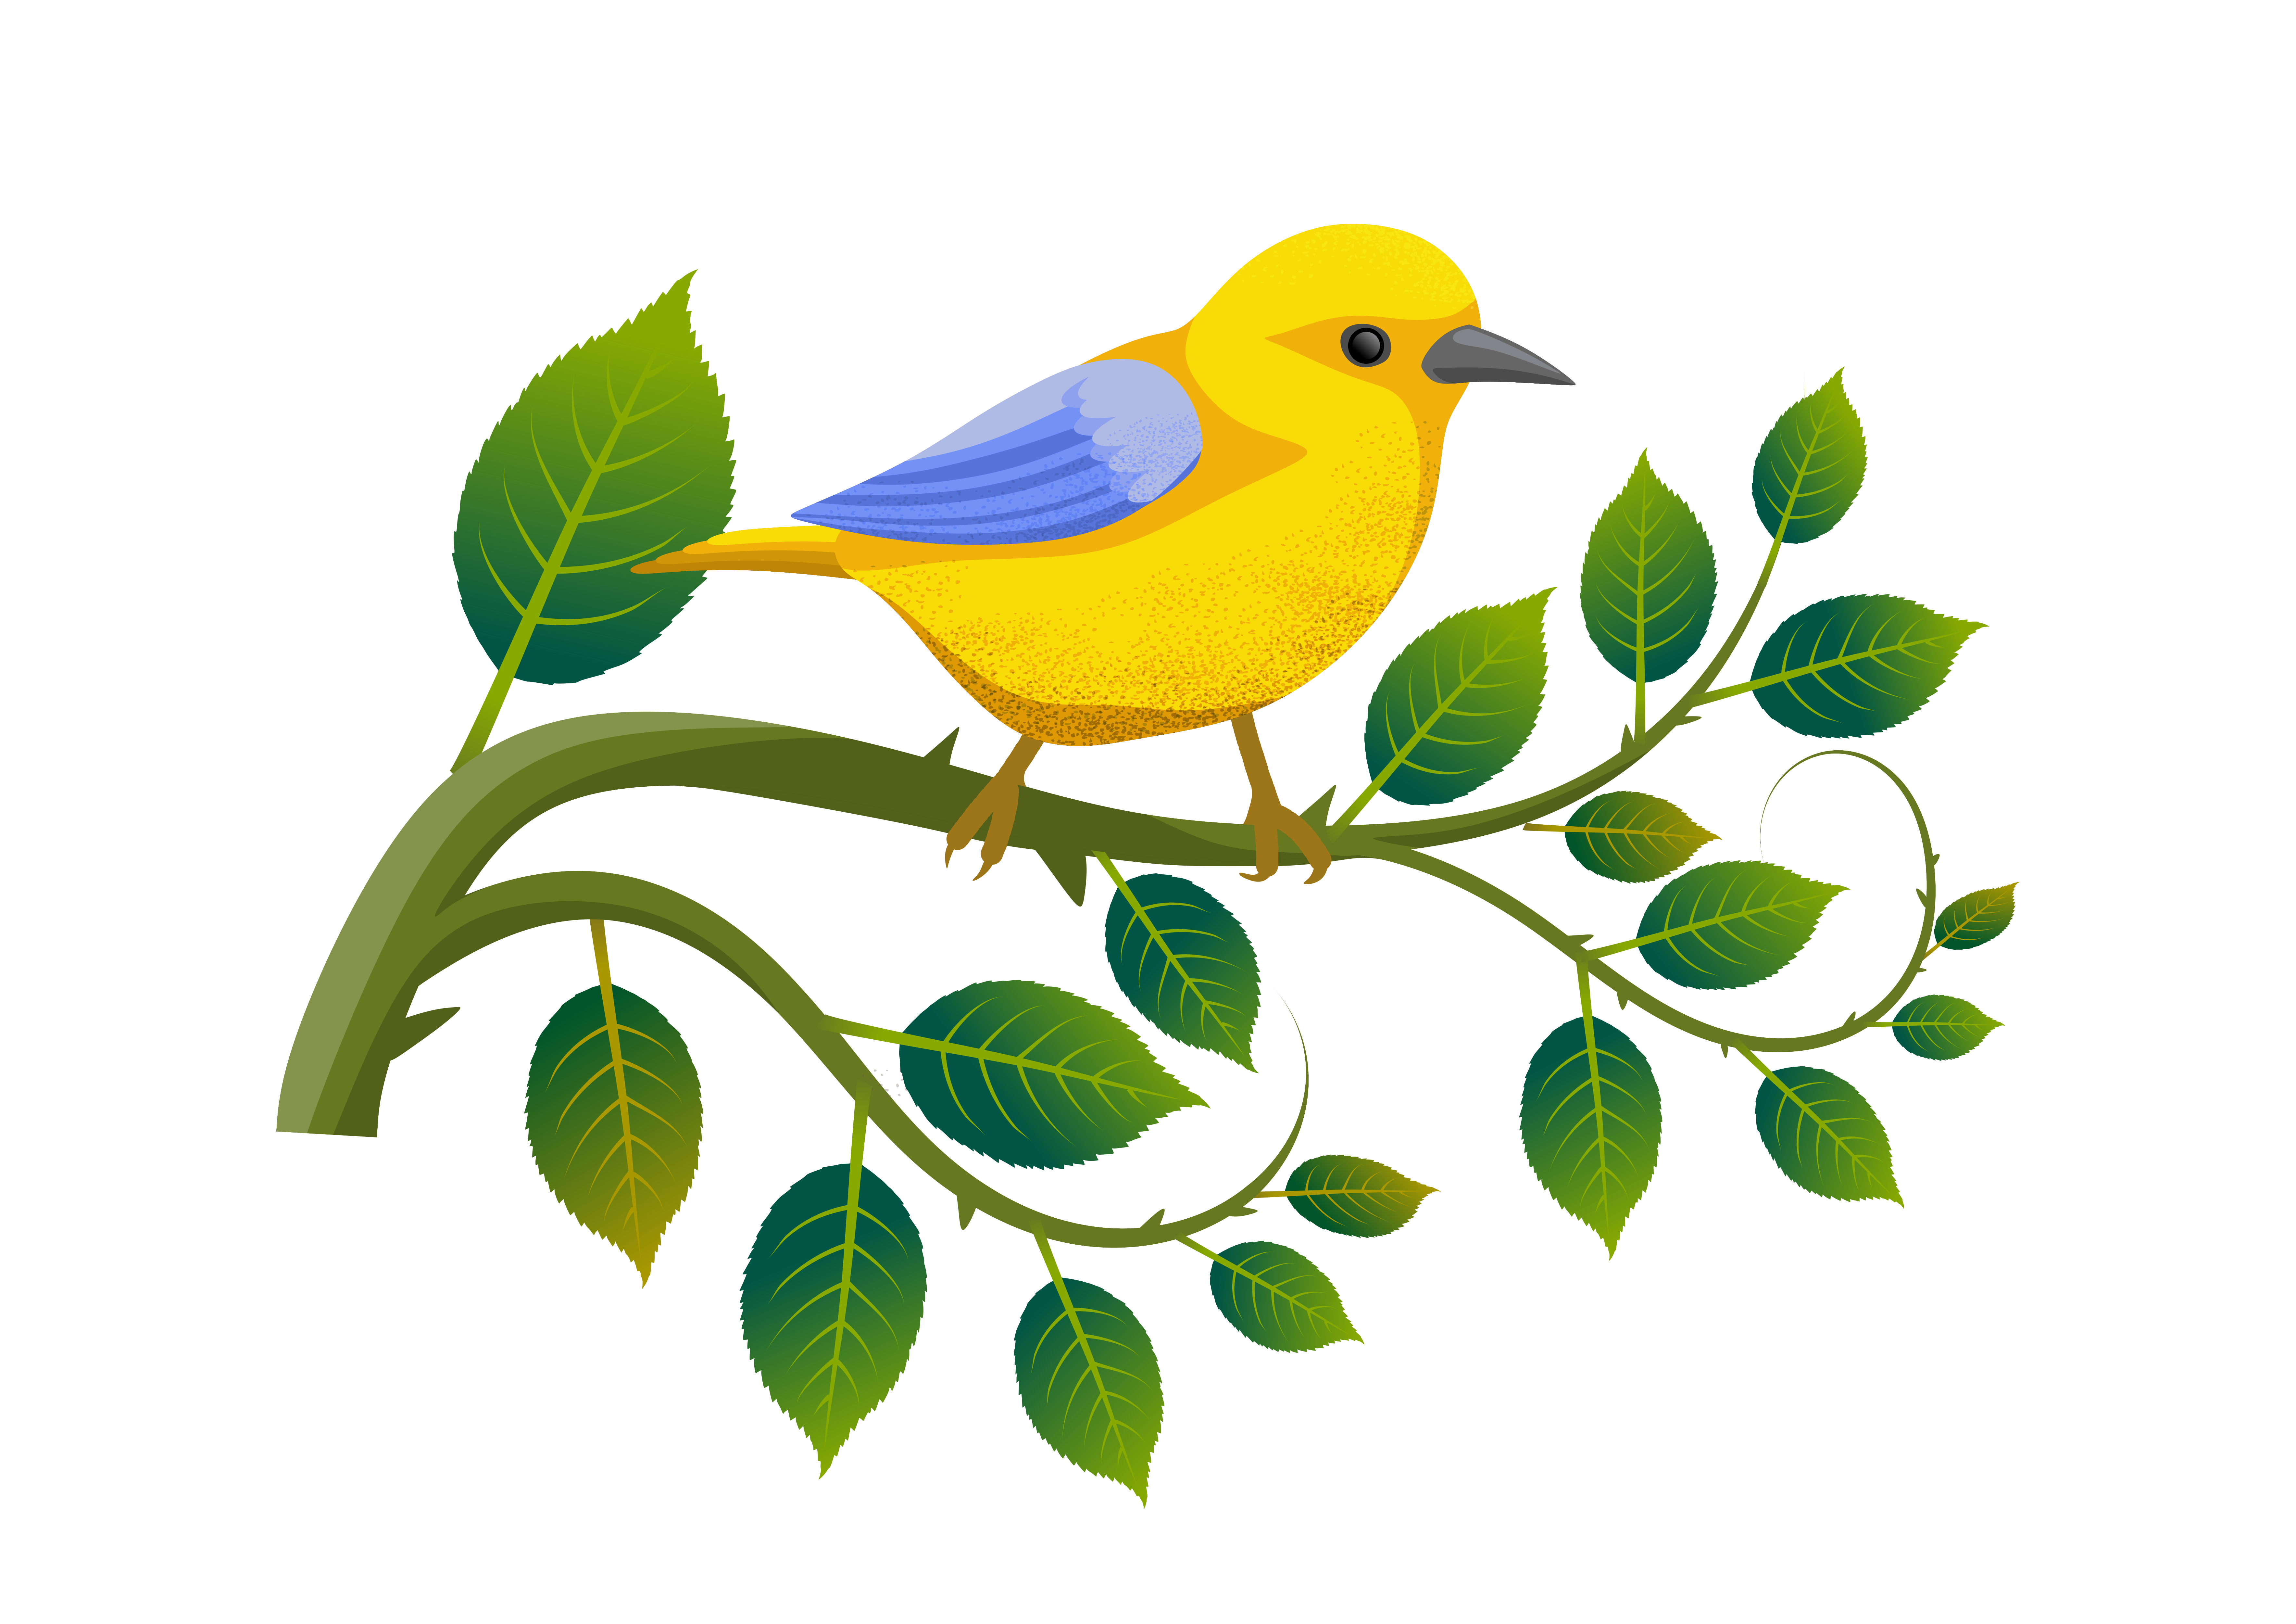 Download Free Nature Landscape And Stylizedfloral Bird Graphic By for Cricut Explore, Silhouette and other cutting machines.